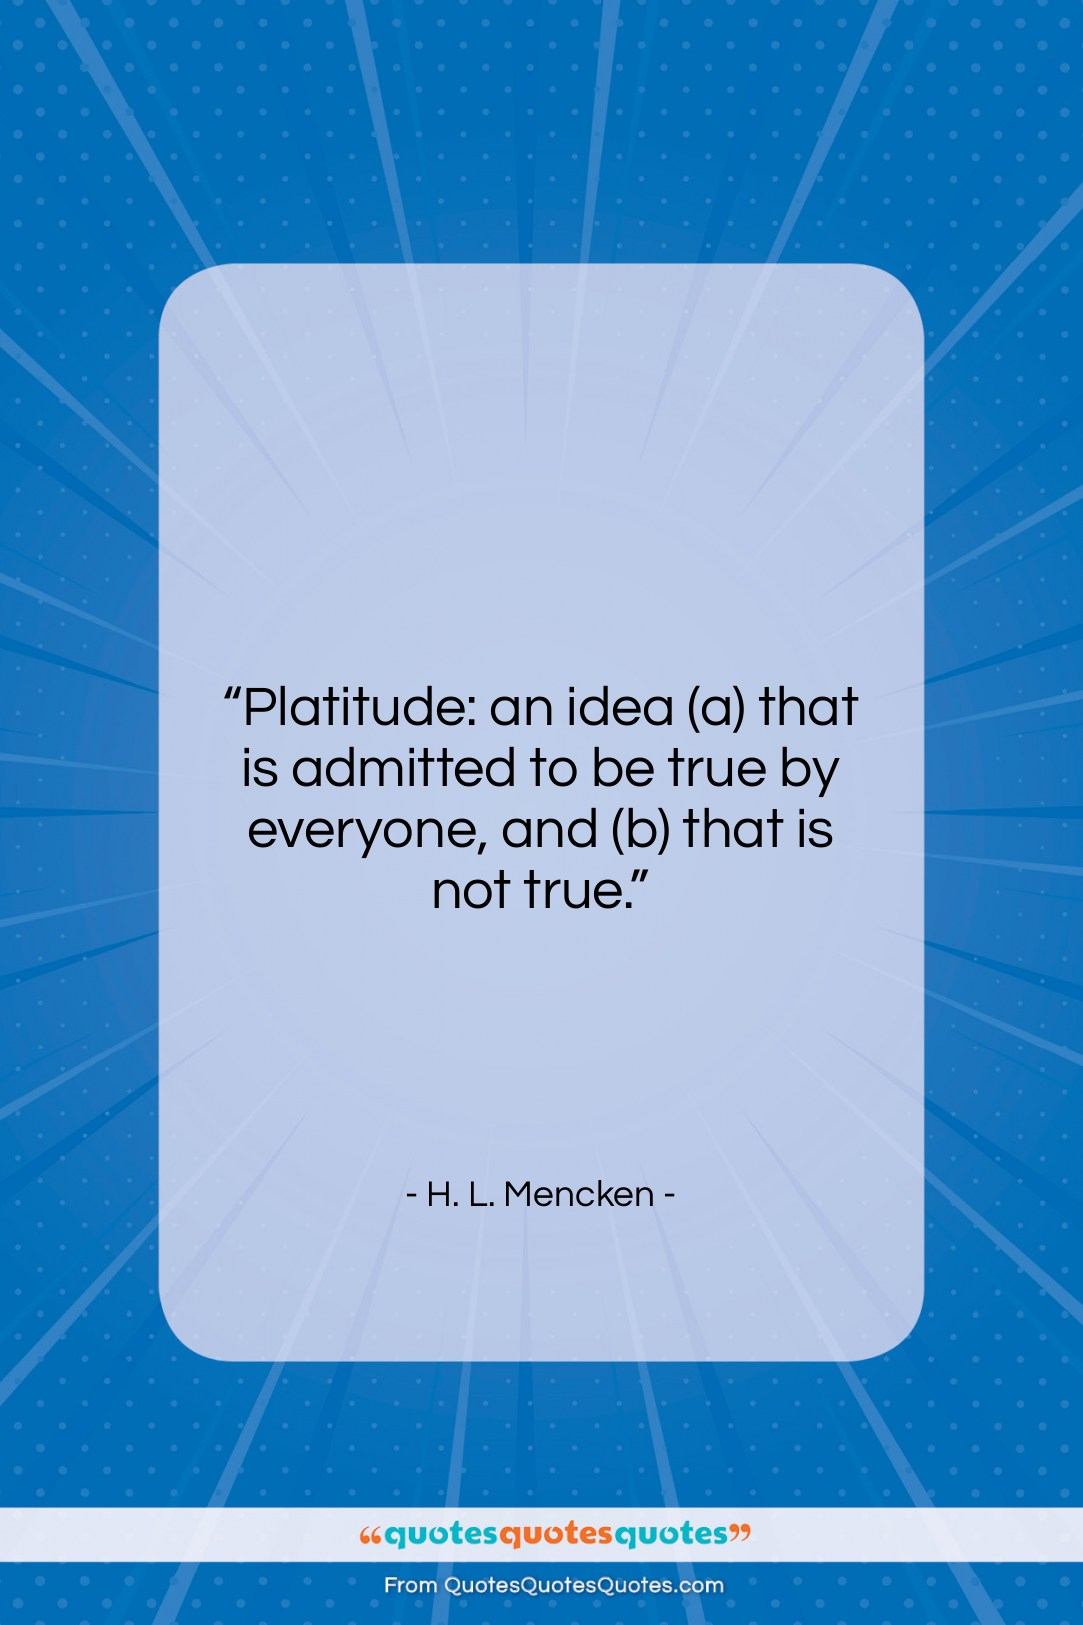 """H. L. Mencken quote: """"Platitude: an idea (a) that is admitted…""""- at QuotesQuotesQuotes.com"""